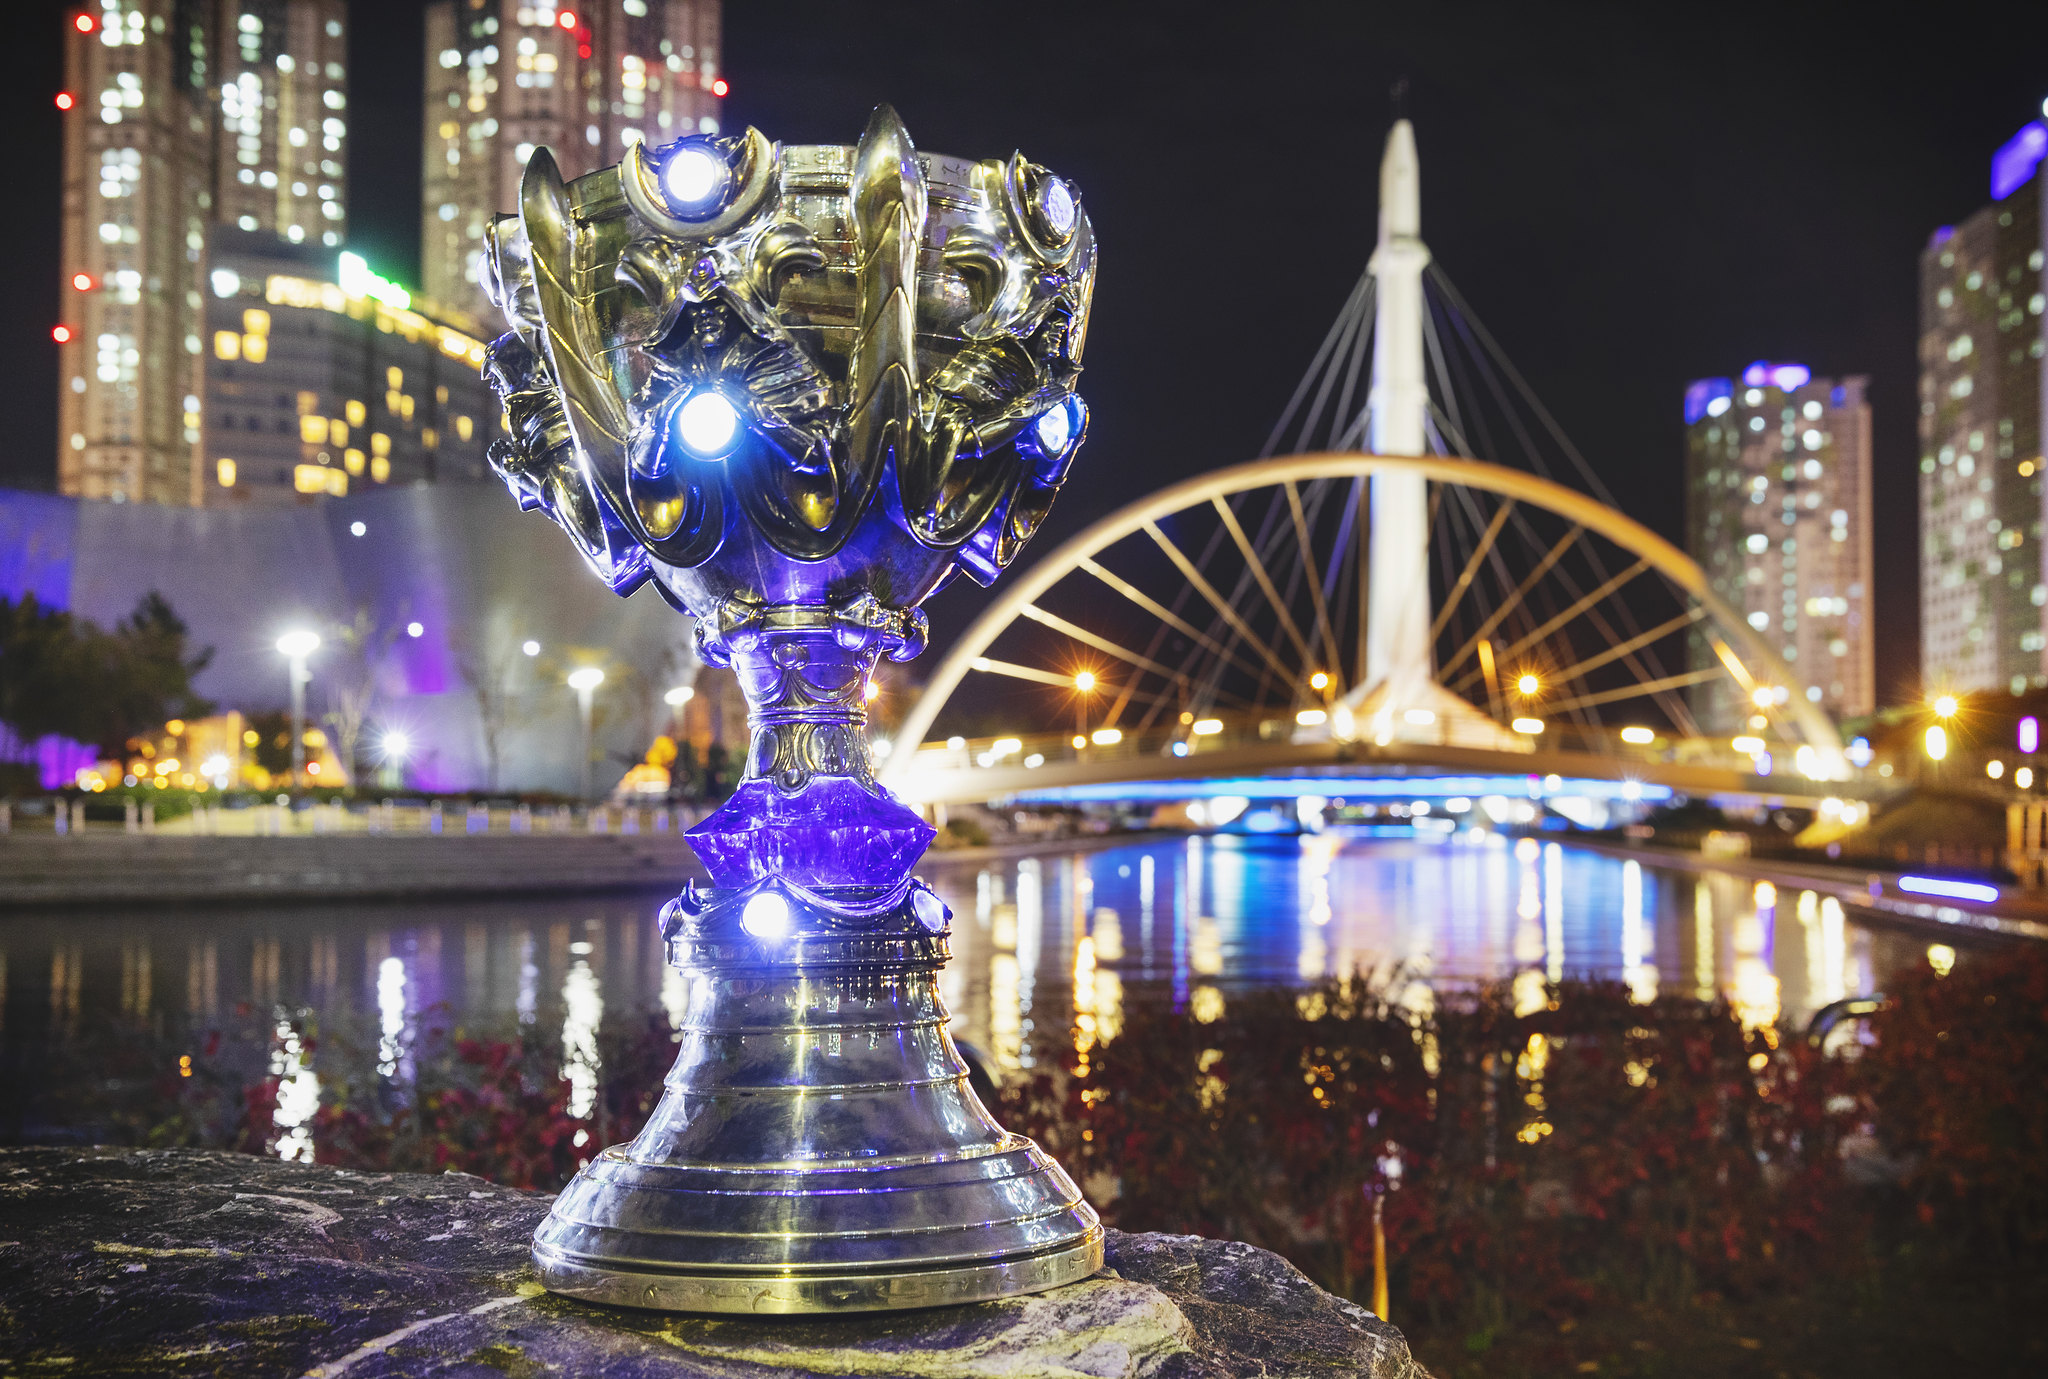 A League of Legends trophy sitting outside in a city at night